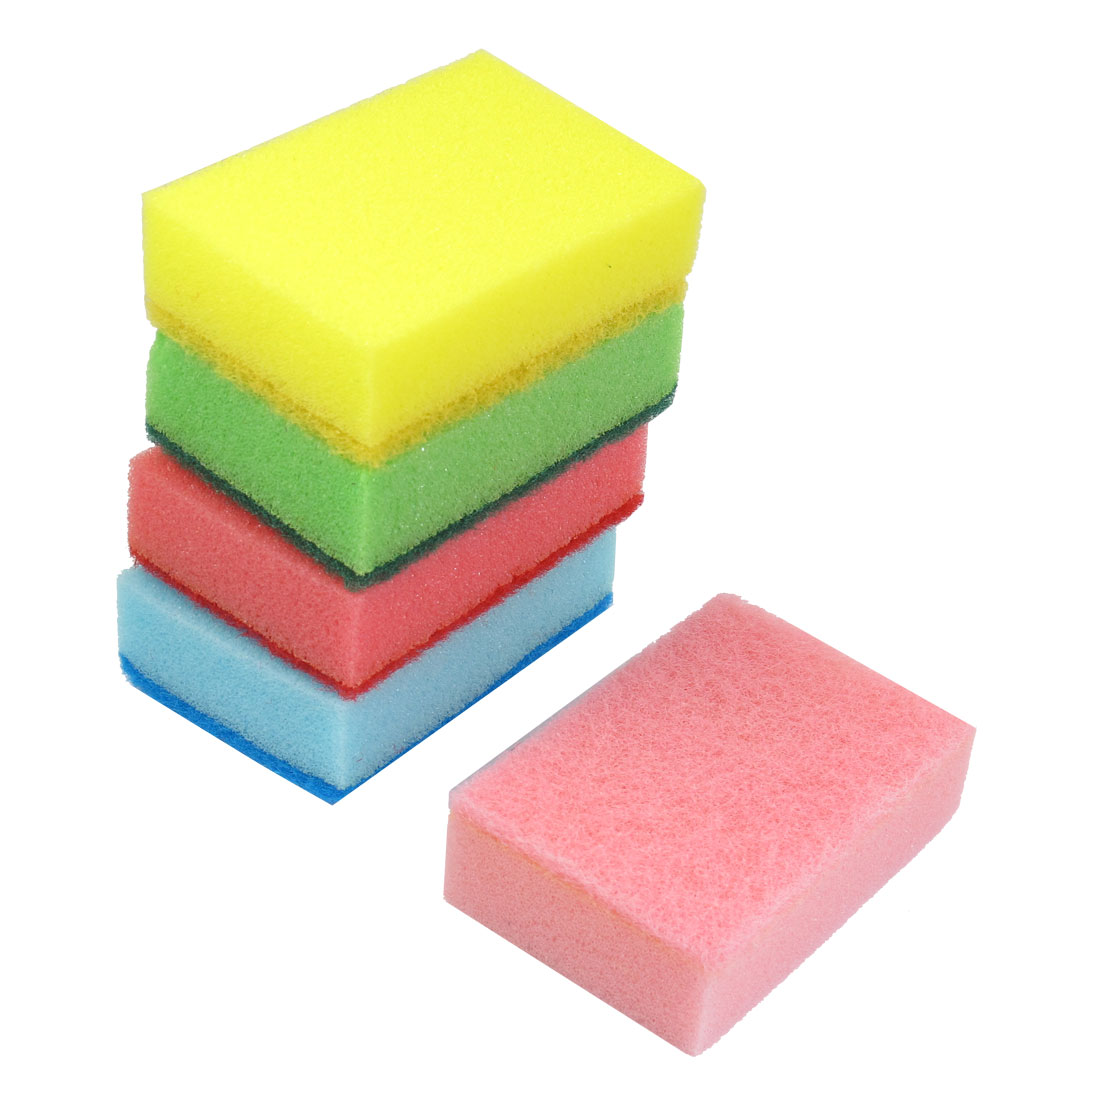 5 Pcs Multicolor Kitchenware Rectangle Shaped Cleaning Sponge Pads